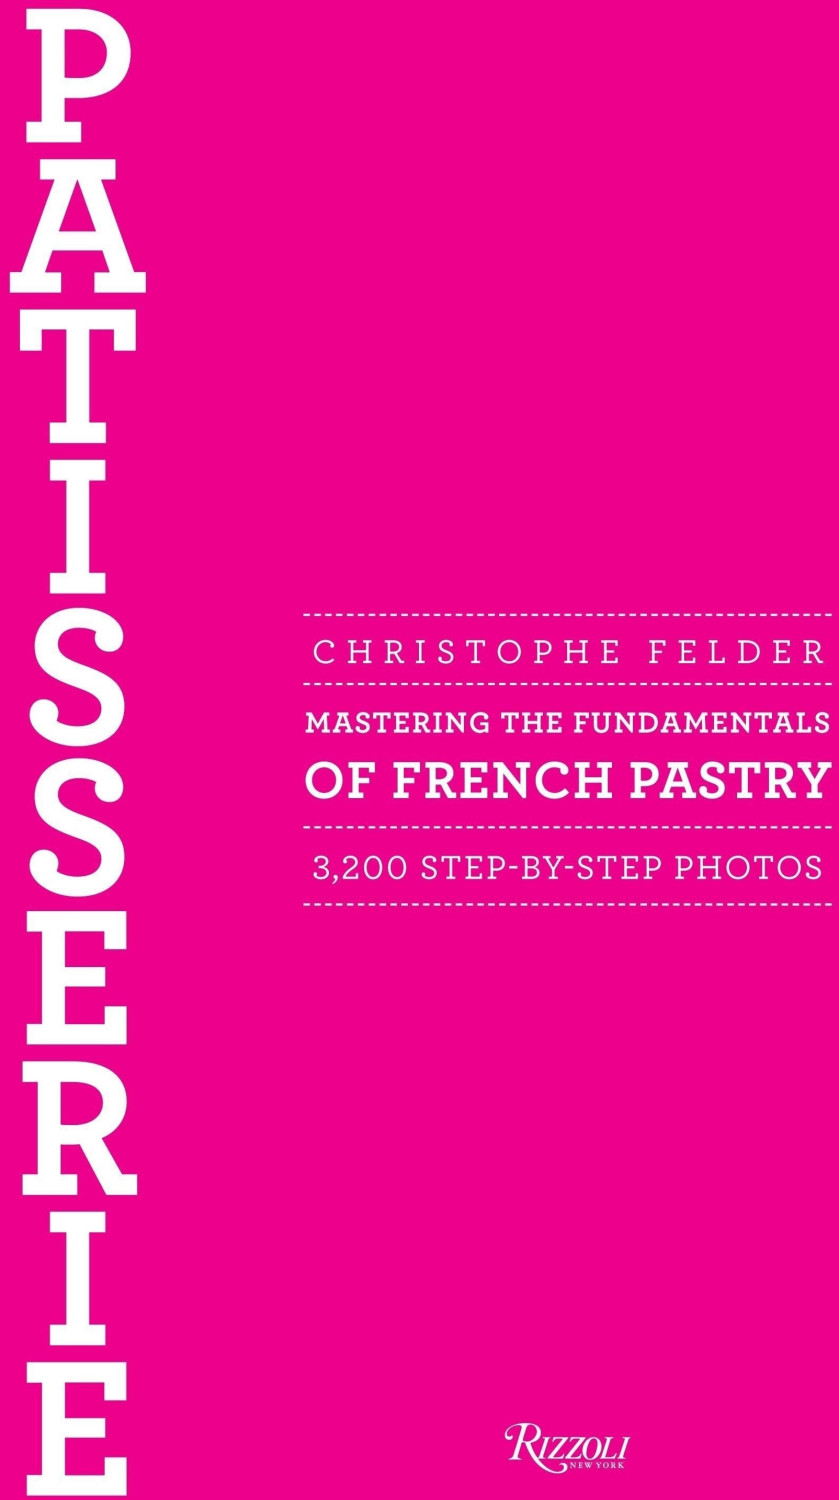 Patisserie Mastering the Fundamentals of French Pastry